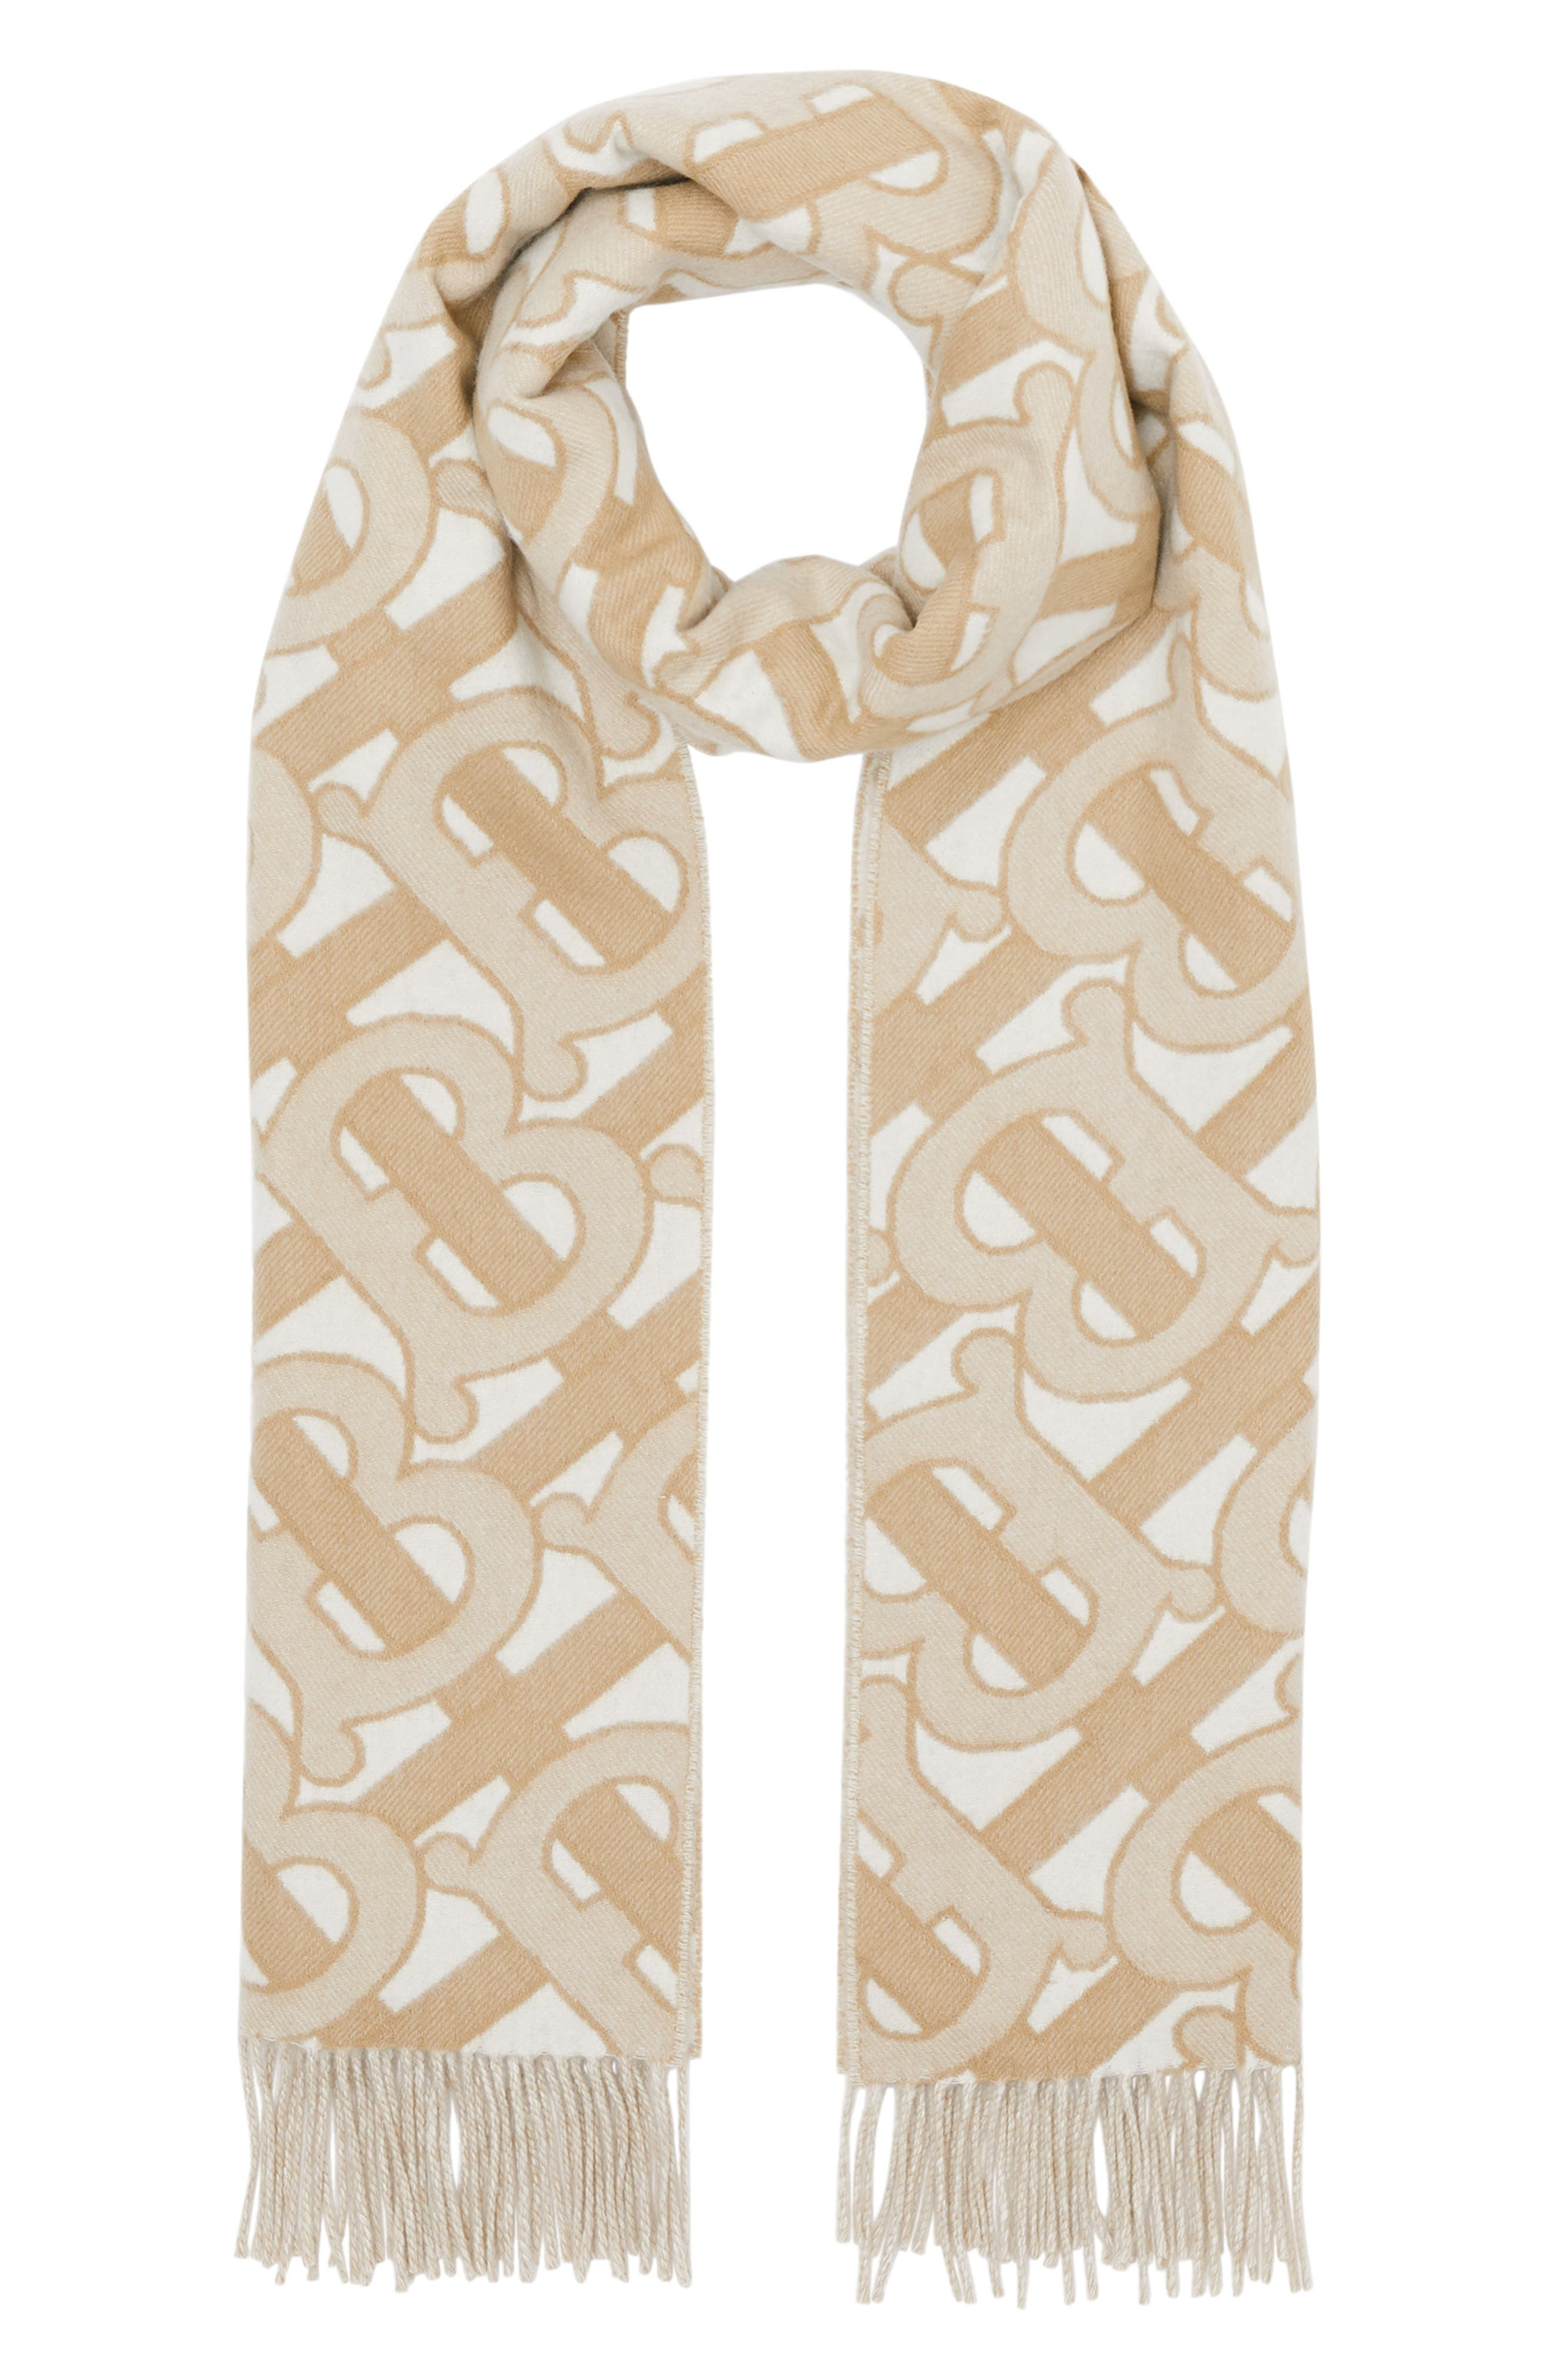 Delicate fringe tips a sumptuously soft cashmere scarf jacquard-woven in Burberry\\\'s signature and sophisticated Monogram pattern. Style Name: Burberry Monogram Jacquard Cashmere Scarf. Style Number: 5902908. Available in stores.